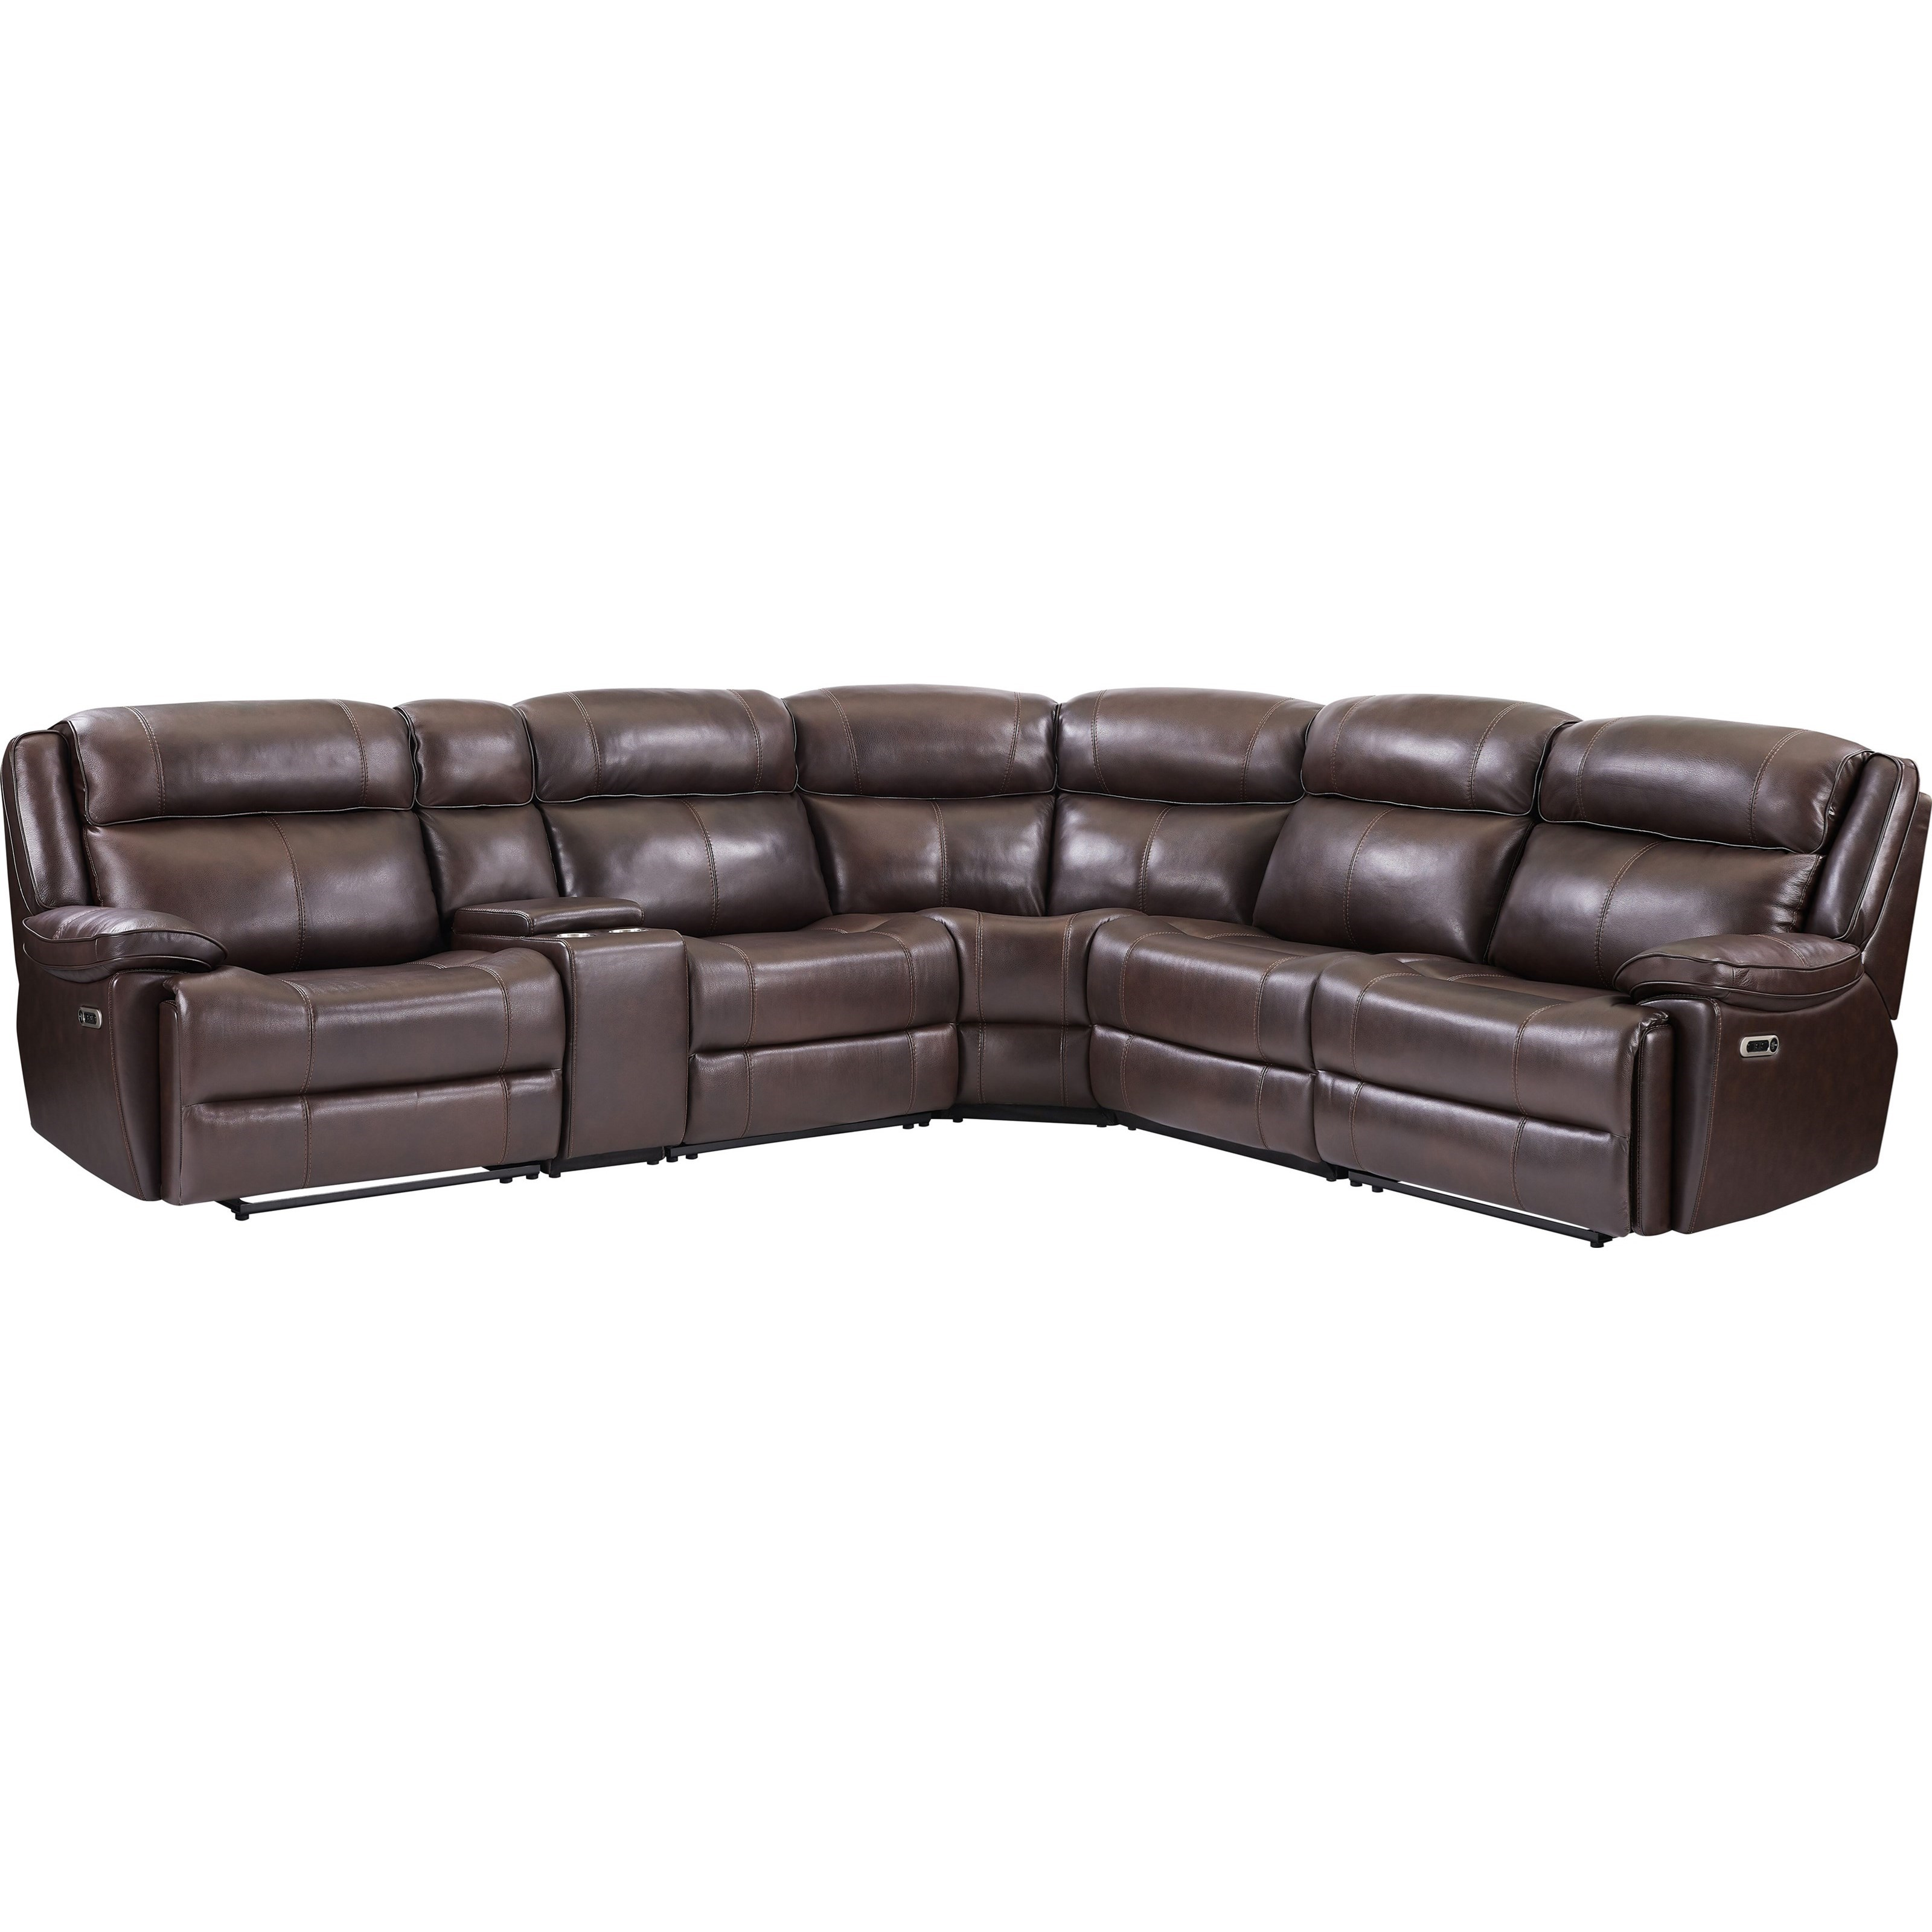 Eclipse Leather Match Power Reclining 5pc Sectional by Parker Living at Wilcox Furniture